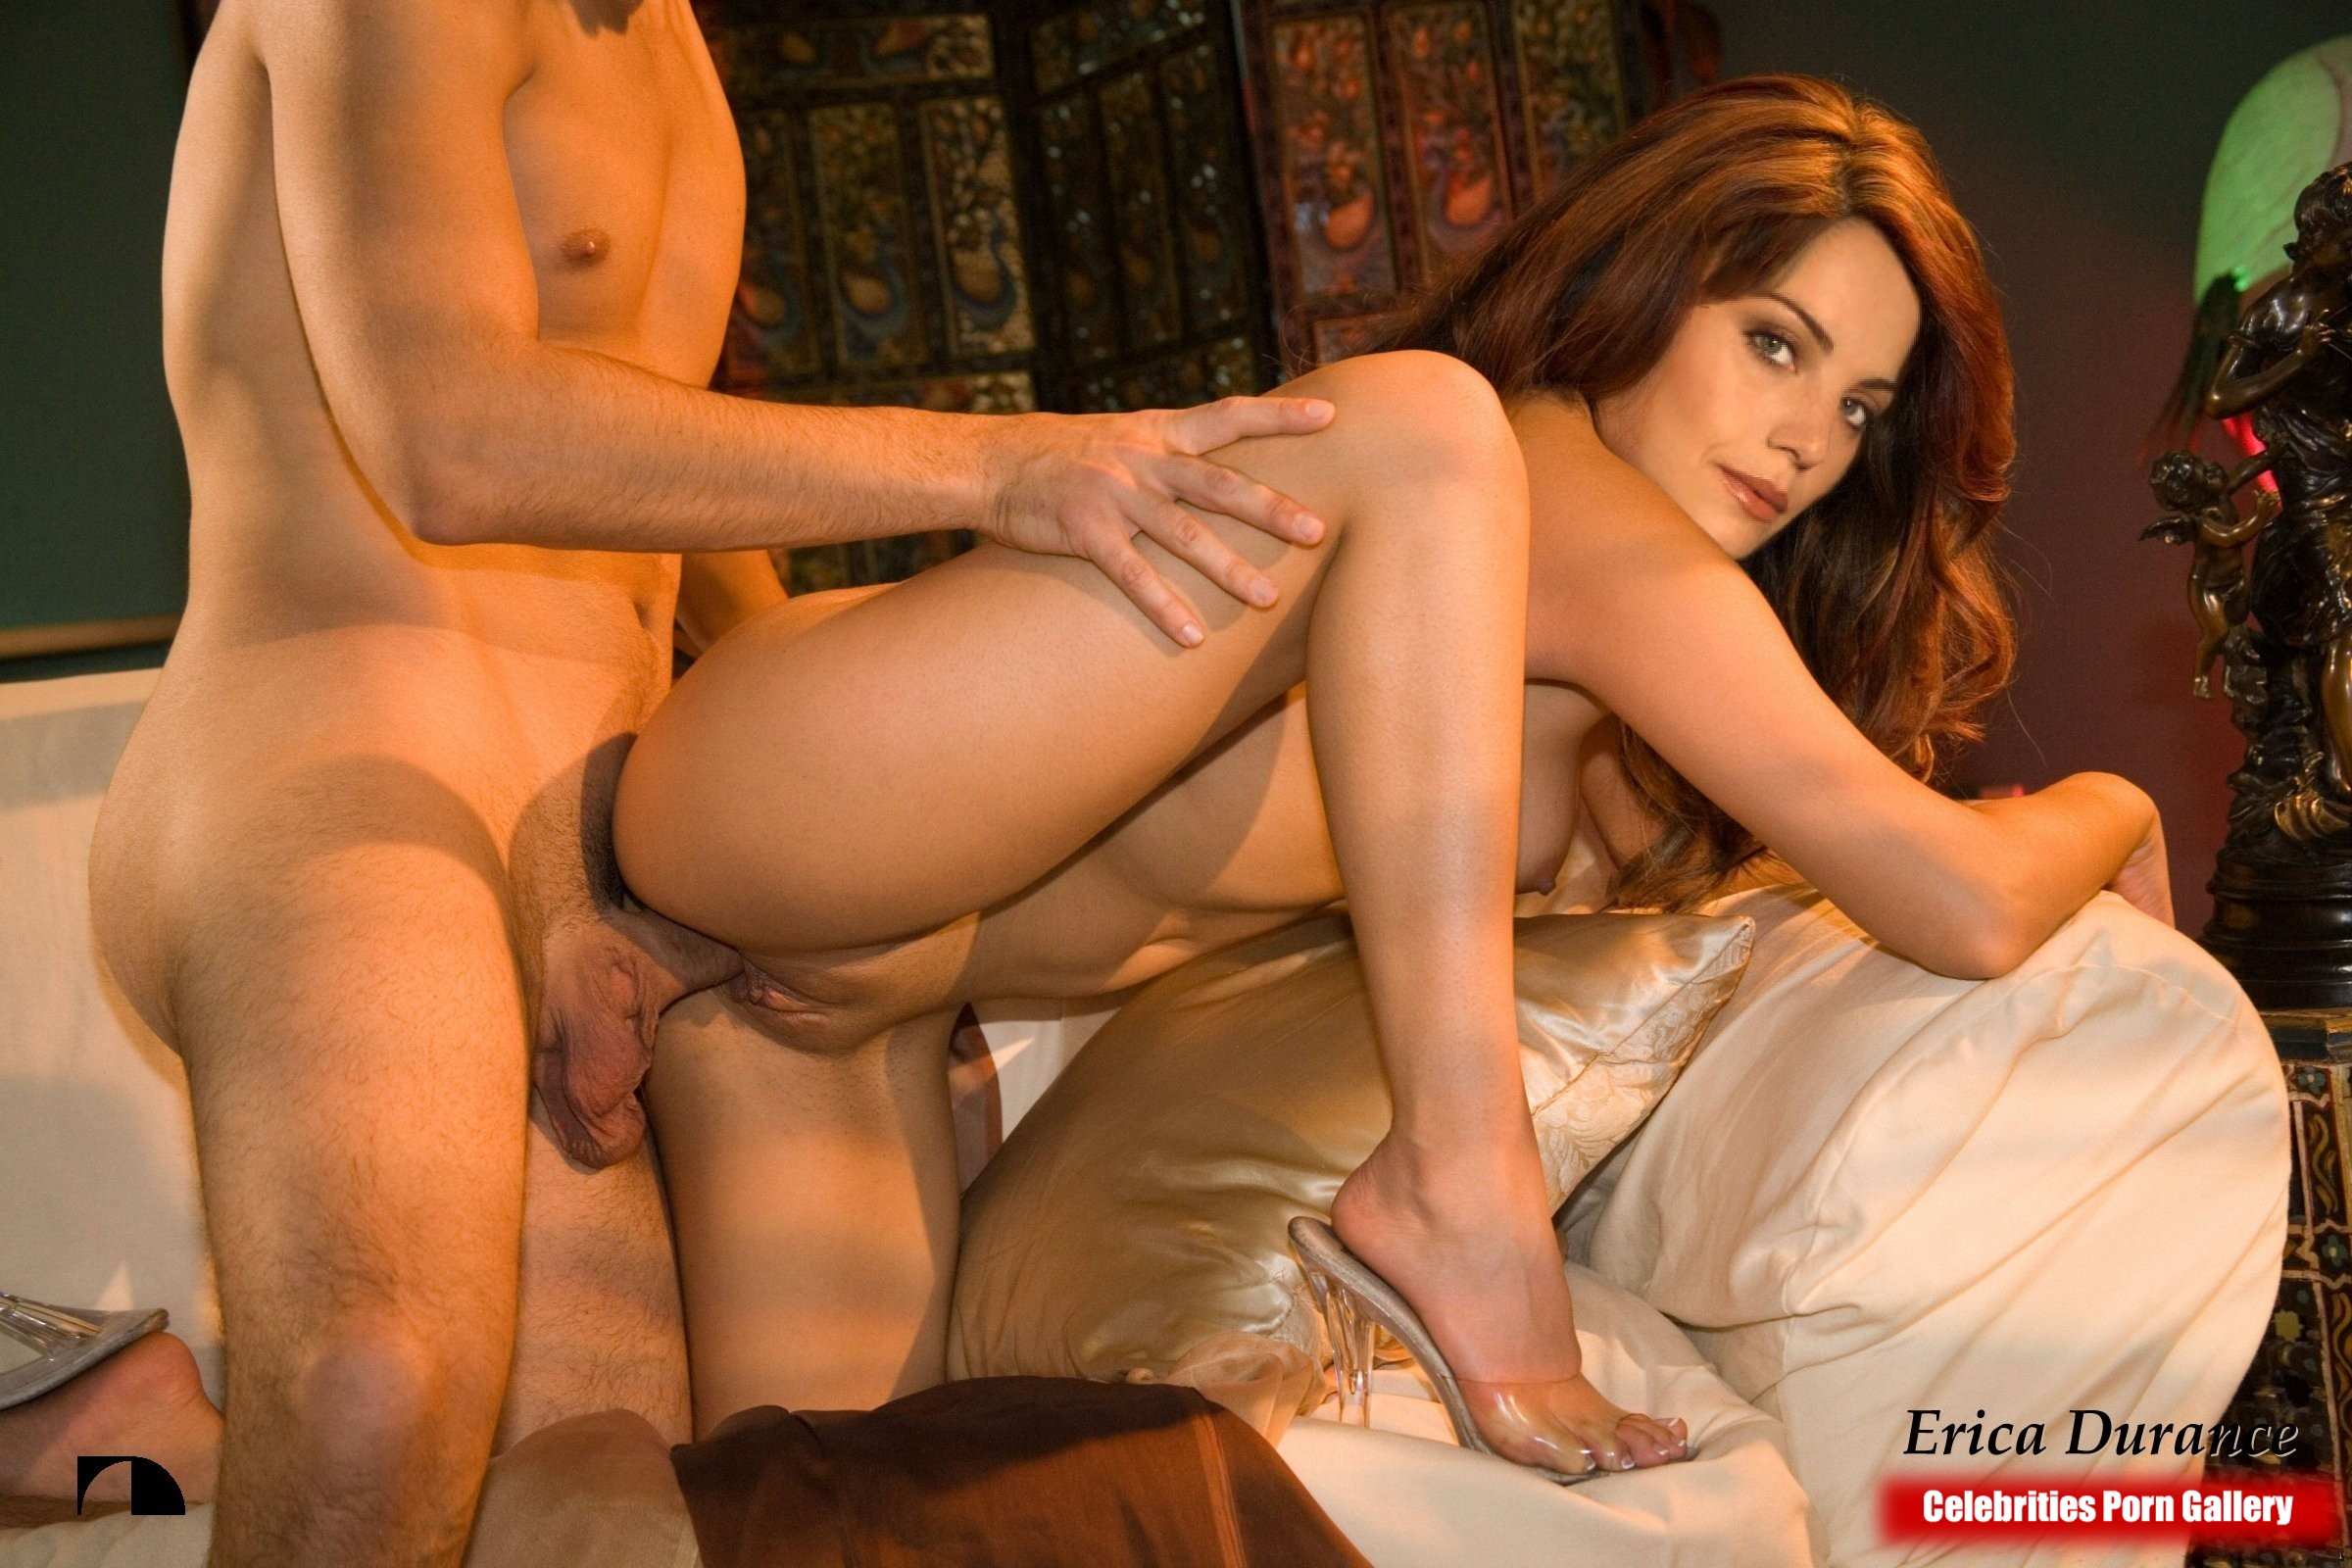 Erica durance nude pictures — img 3